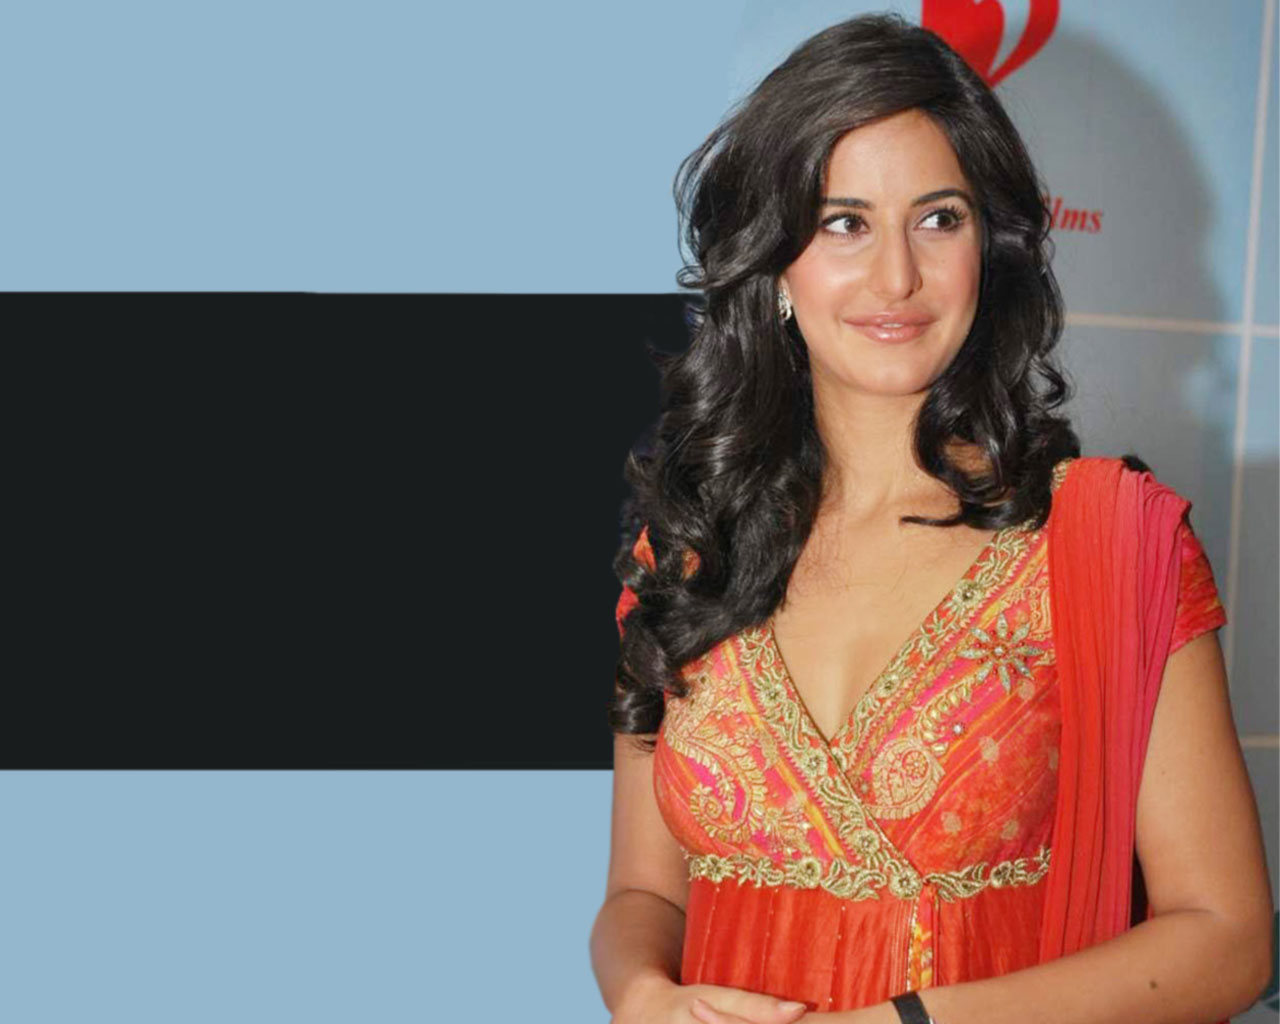 Katrina kaif Wallpapers, Photos and Bollywood Actress Katrina kaif ...